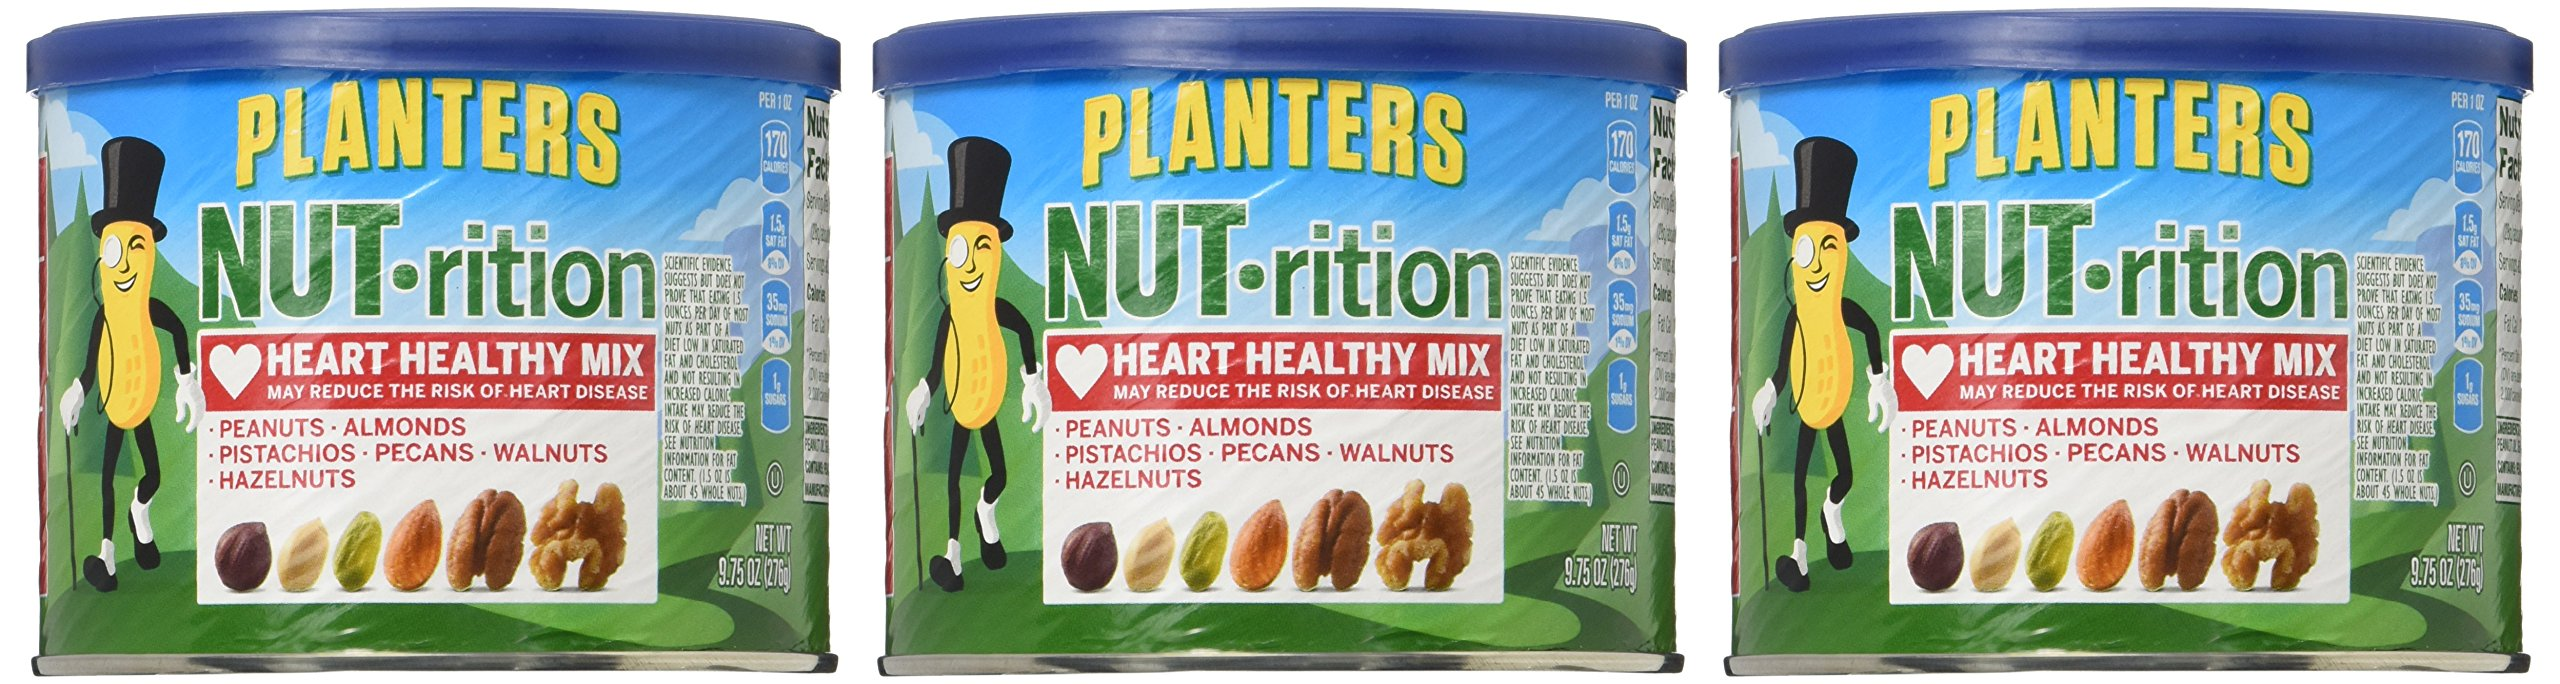 NUTrition Heart Healthy Snack Nut Mix (9.75oz, Pack of 3) by Planters (Image #2)